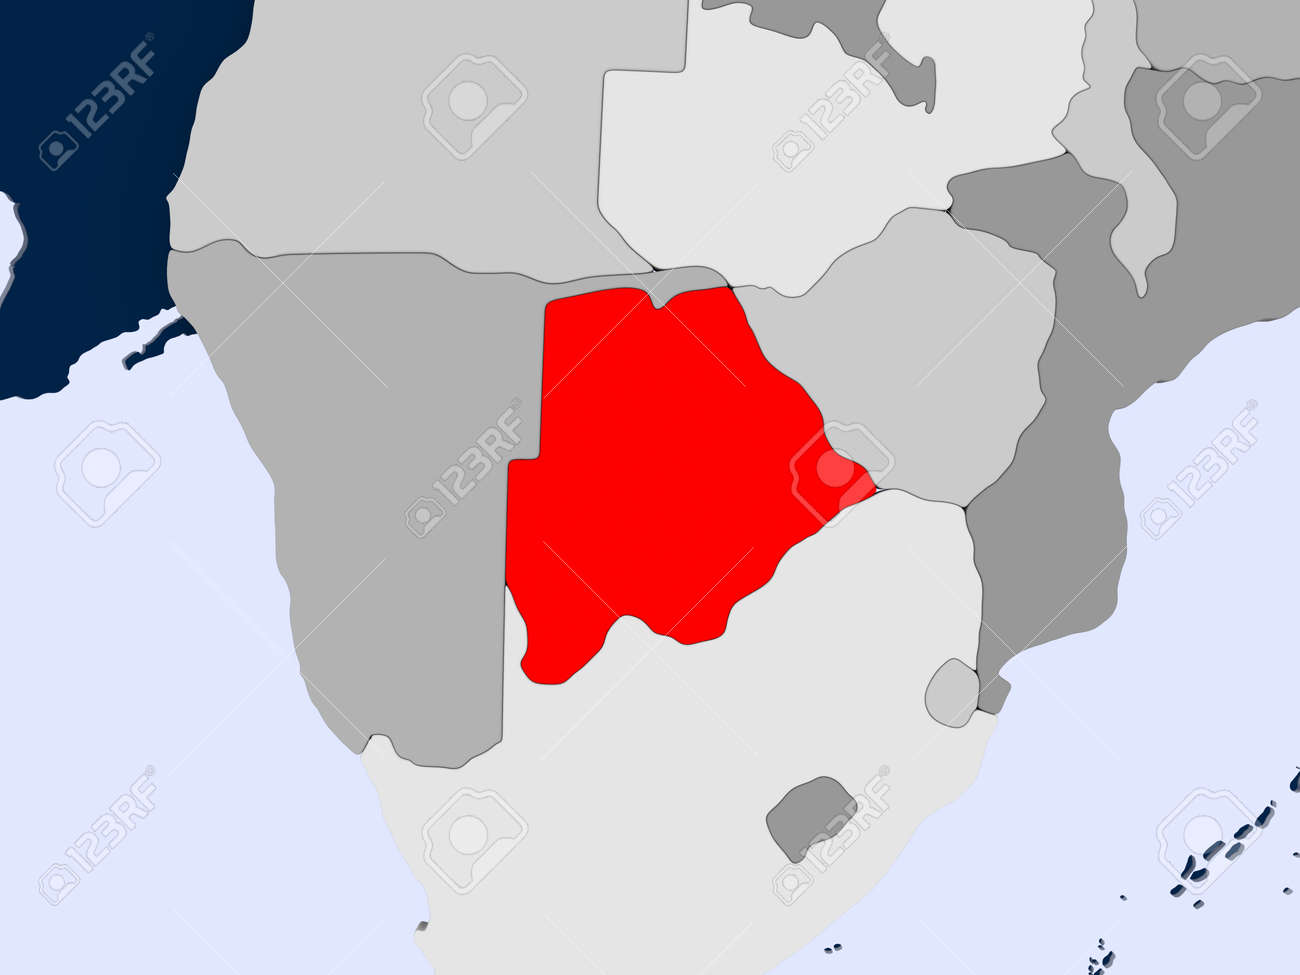 Botswana Political Map.Botswana In Red On Political Map With Transparent Oceans 3d Stock